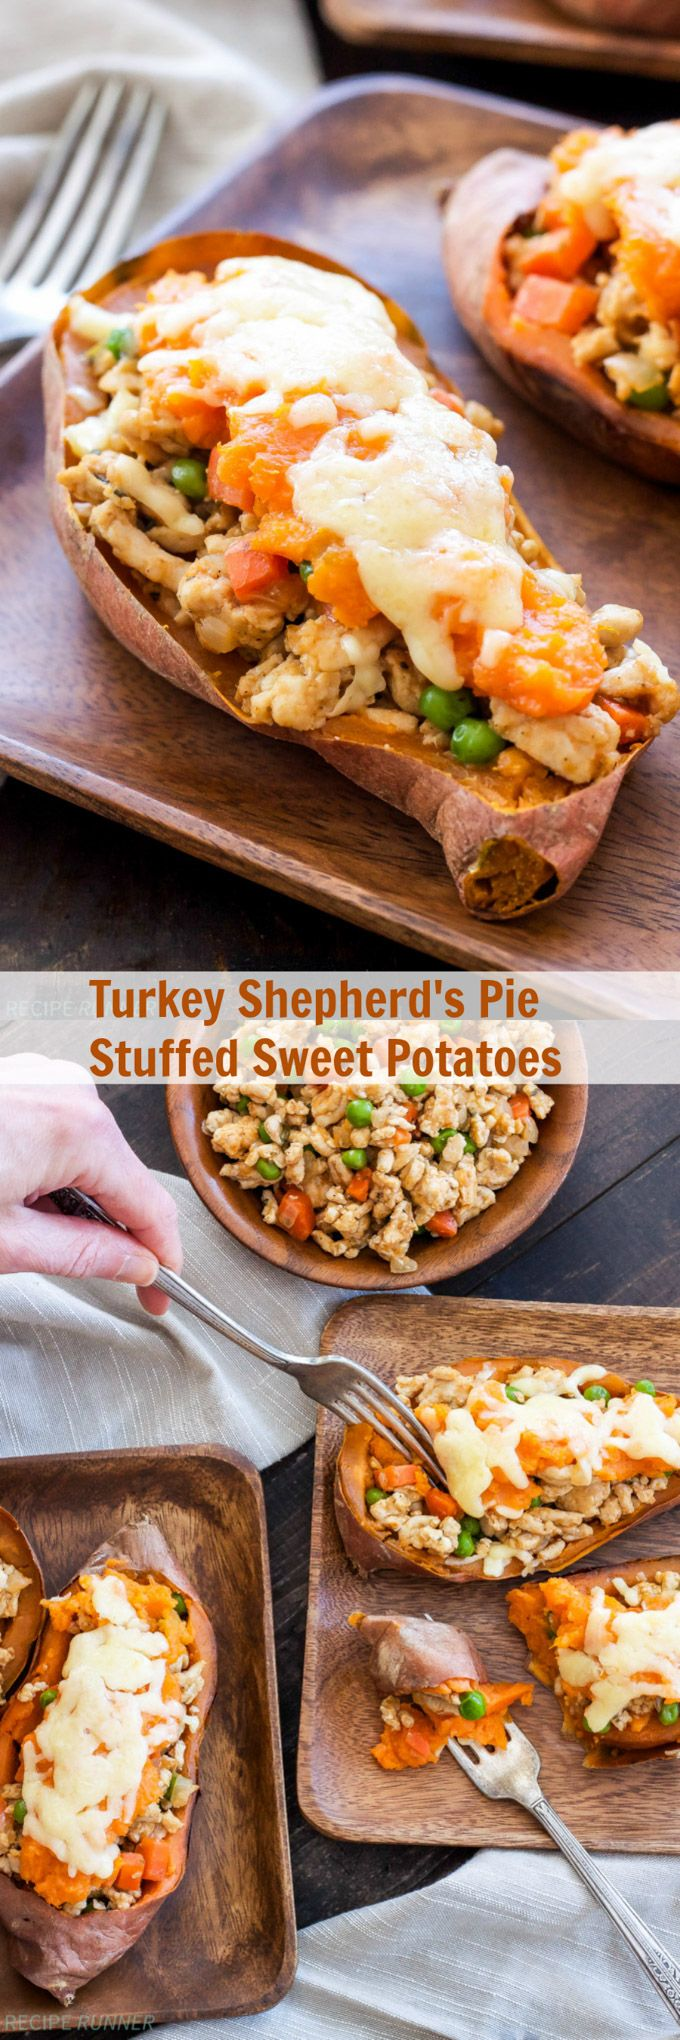 1000 ideas about sweet potato pie filling on pinterest for Non traditional thanksgiving dinner ideas